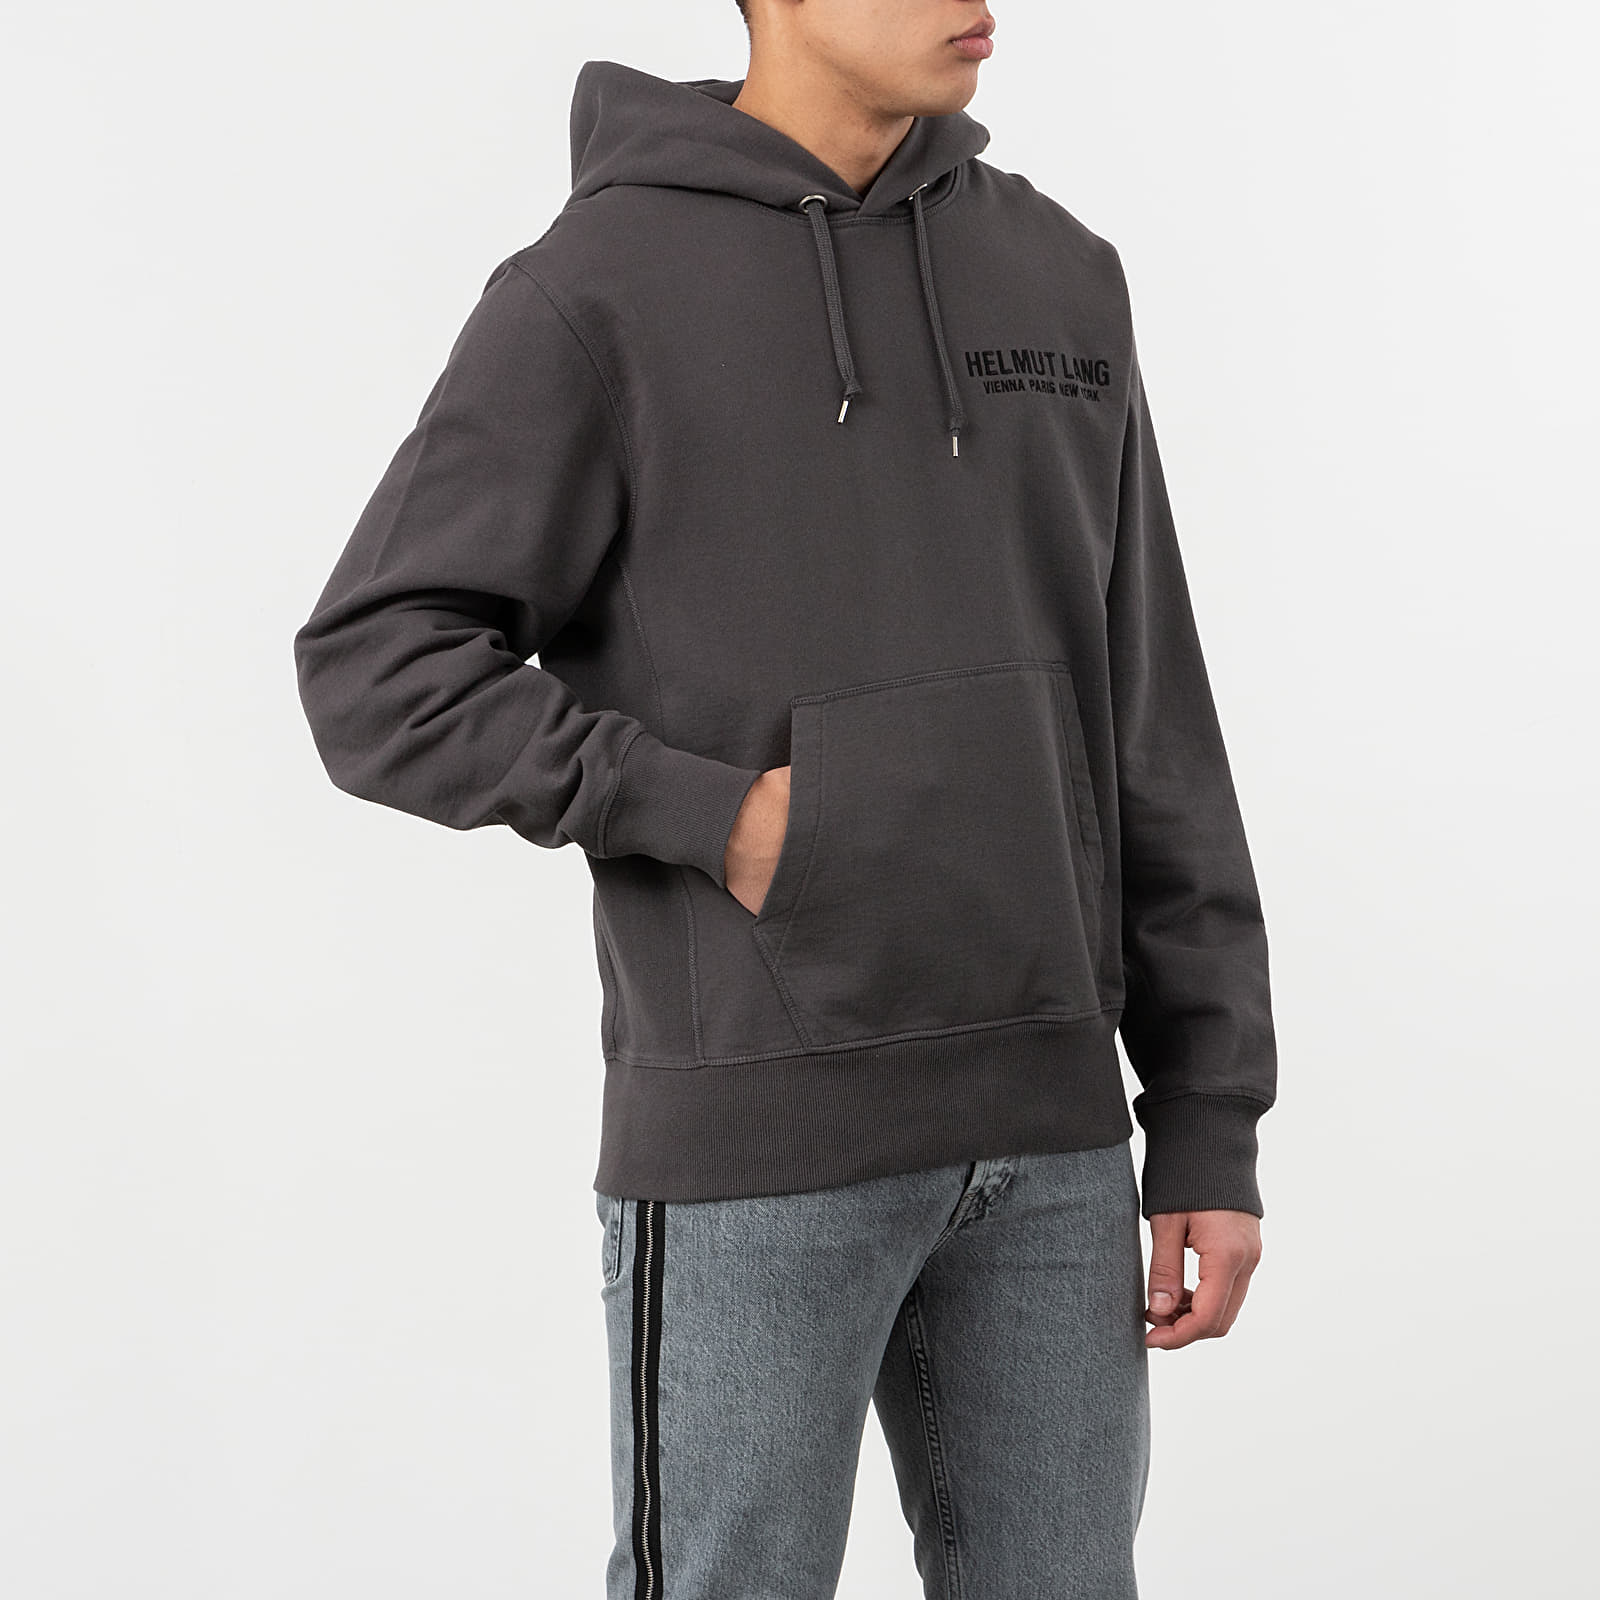 Mikiny a svetry HELMUT LANG Eagle Boy Hoodie Pewter